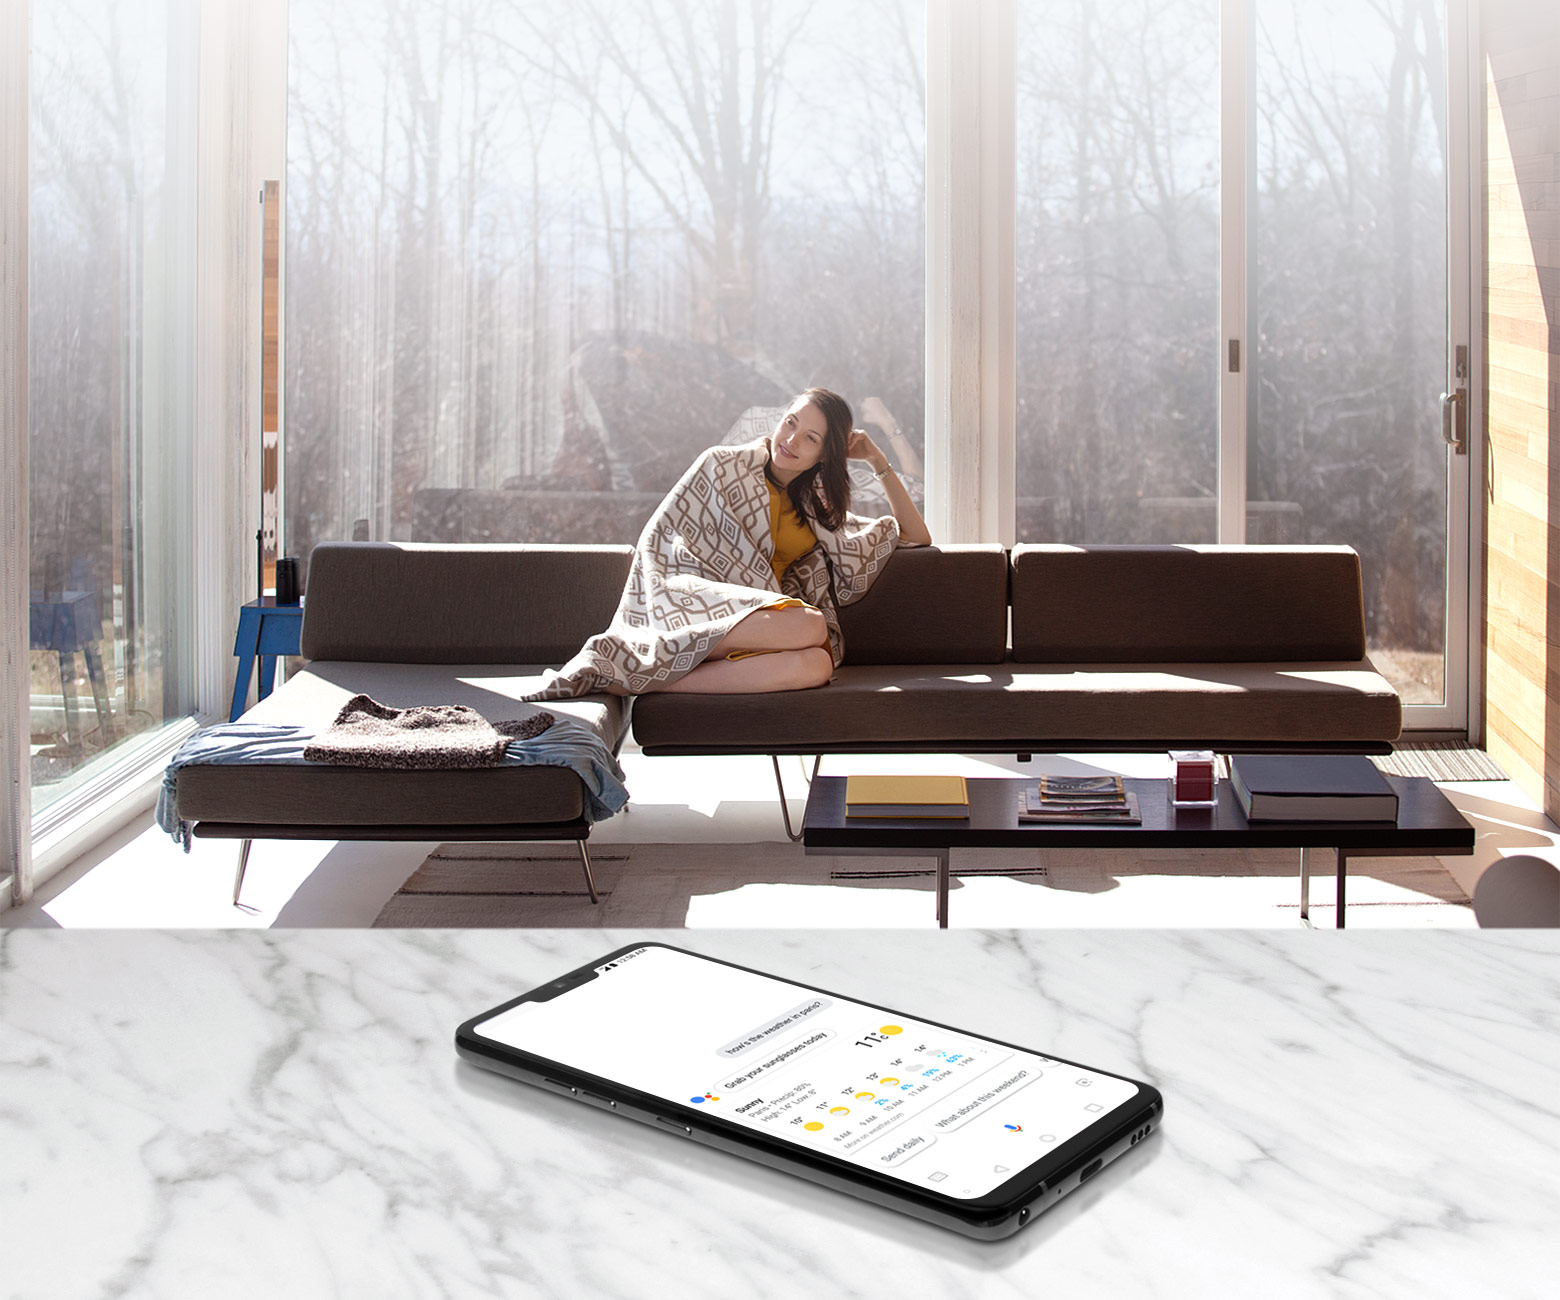 A woman sits on a couch and issues voice commands to a G7 ThinQ resting on a table several feet away.